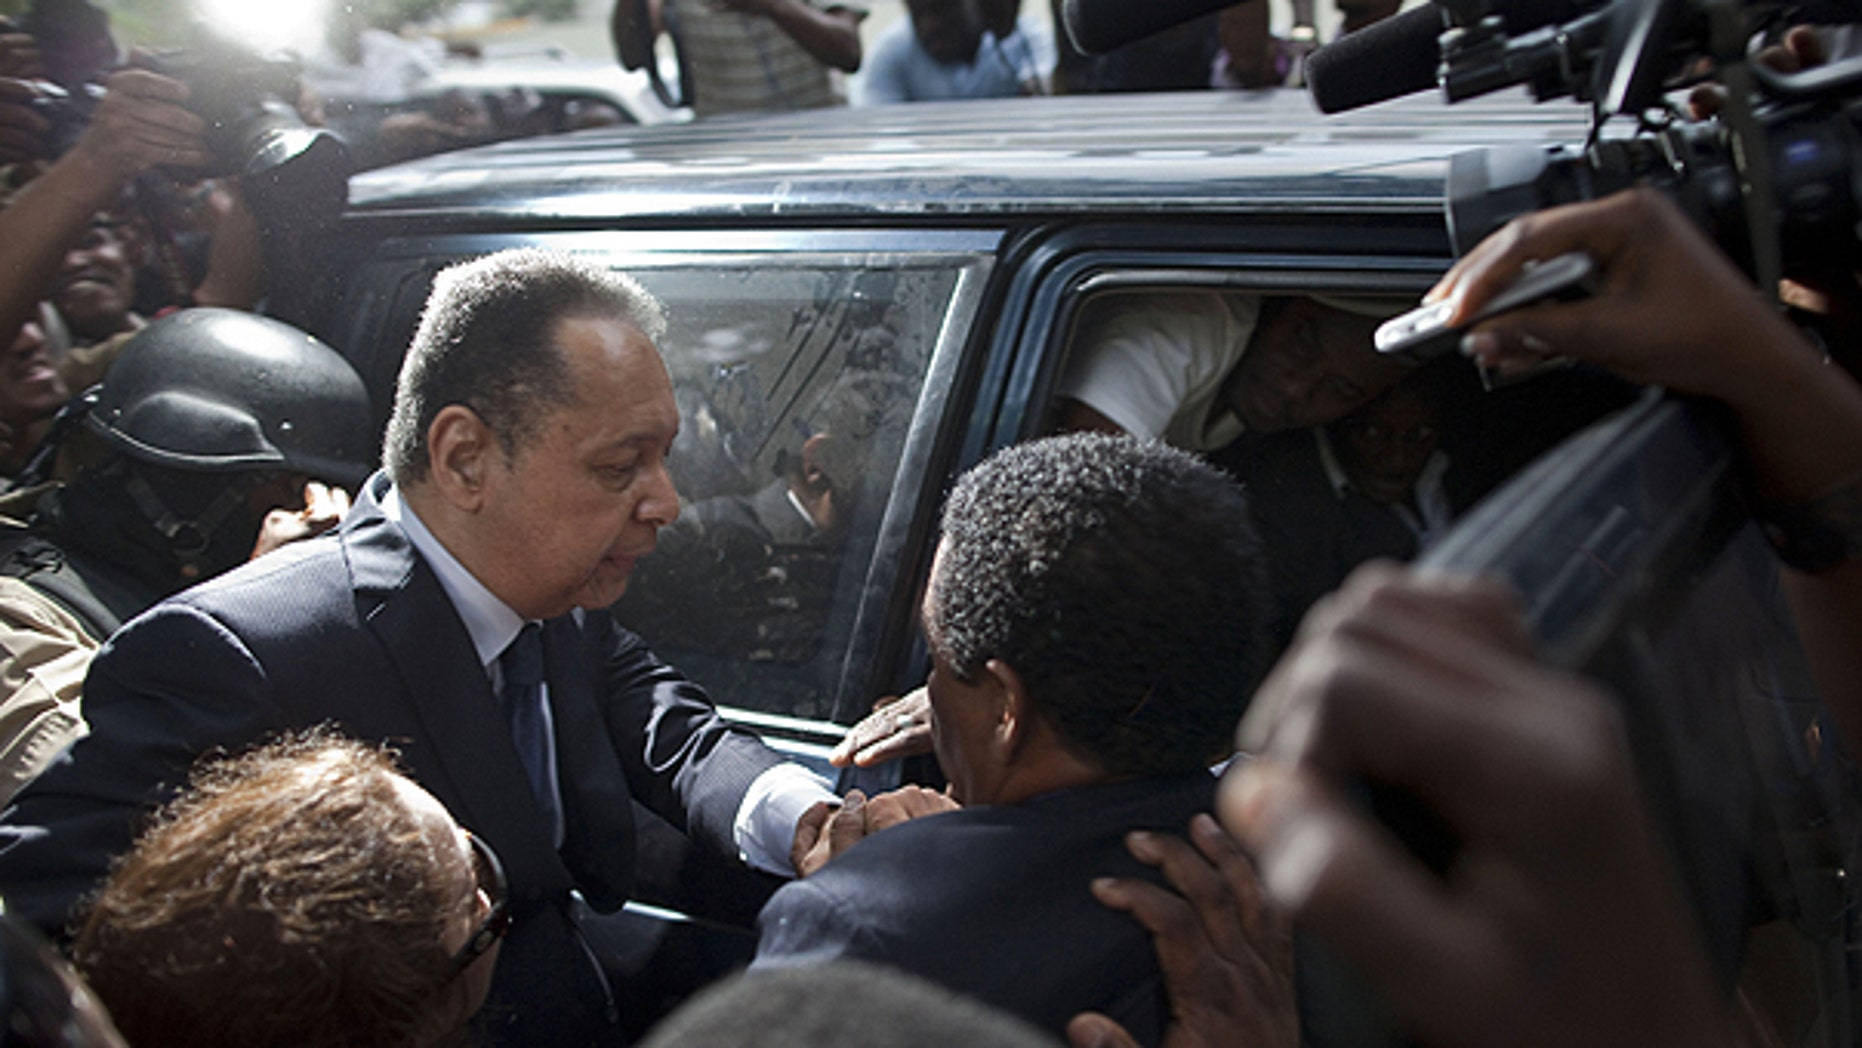 Jan. 18: Haiti's former dictator Jean-Claude Duvalier, left, leaves court surrounded by journalists in Port-au-Prince, Haiti.